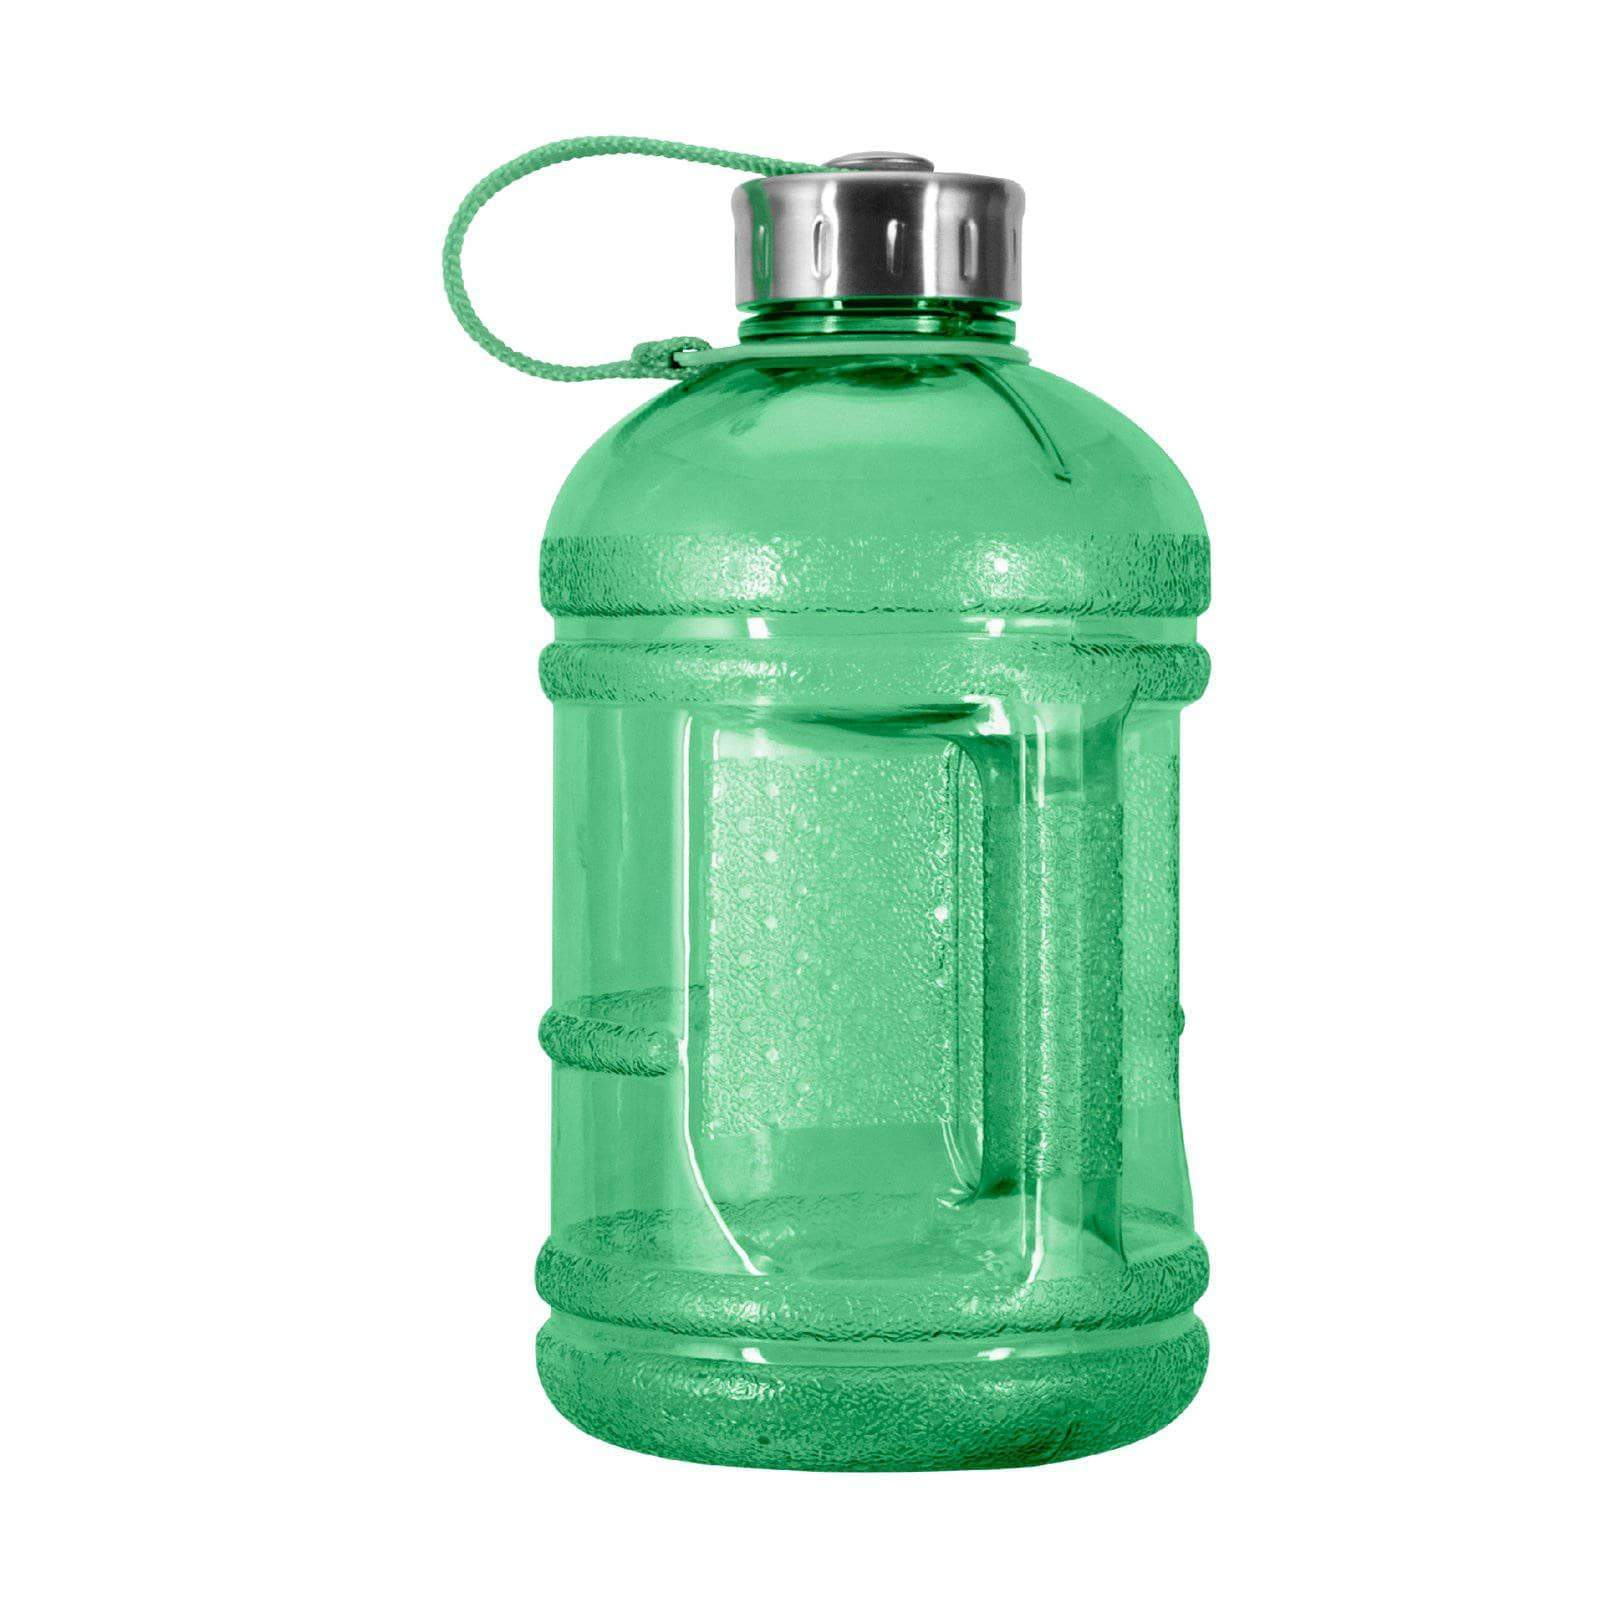 Geo Bottles Bottles Green 1/2 Gallon BPA FREE Plastic Water Bottle w/ 48mm Steel Cap